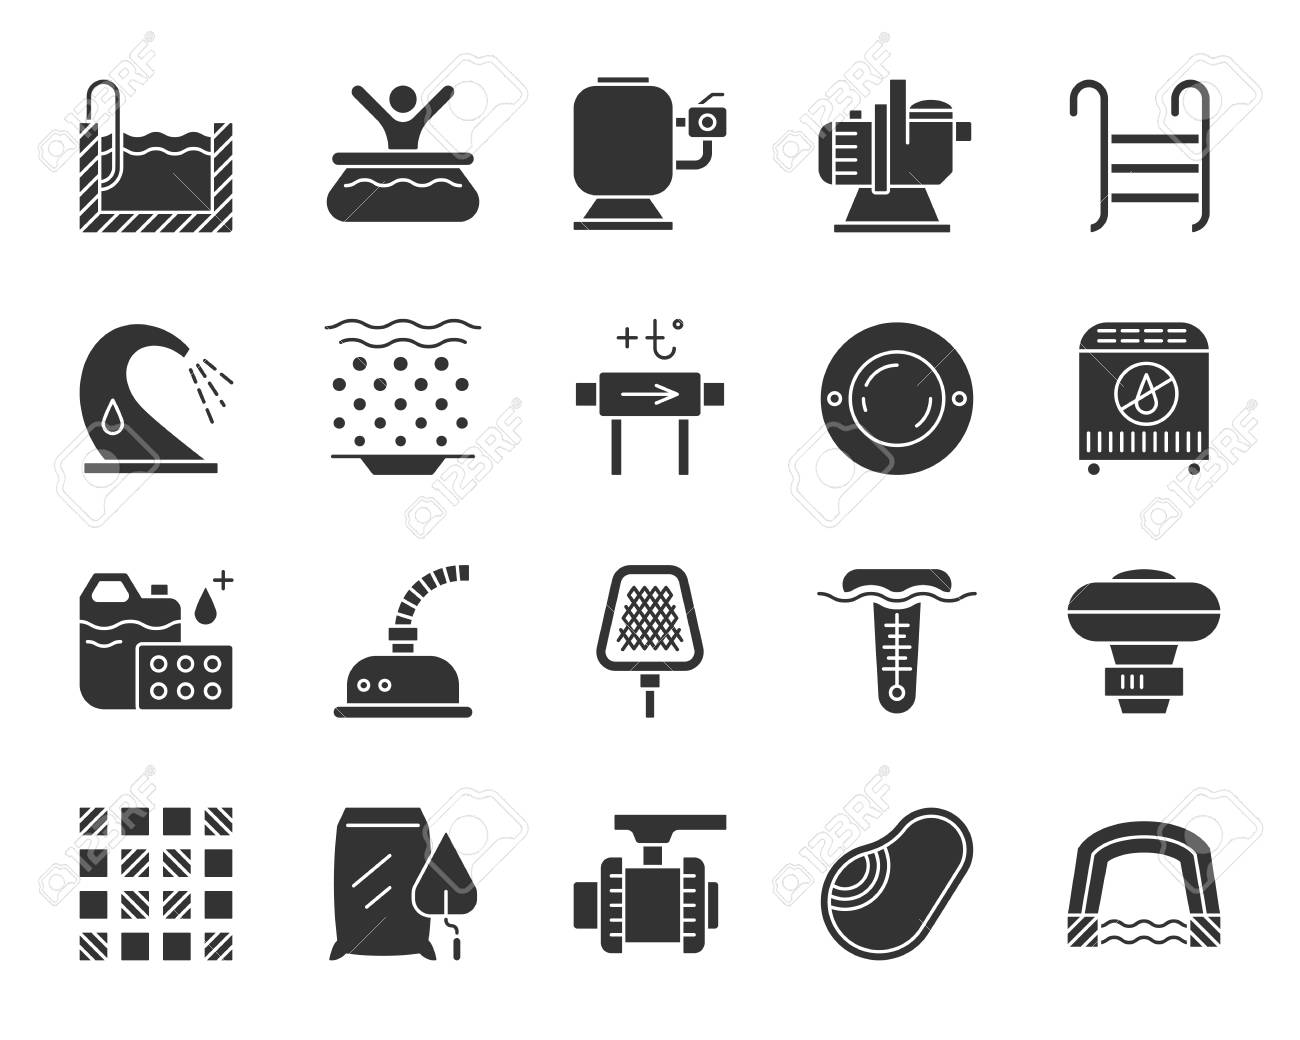 ff04a5e56422 Swimming pool equipment silhouette icons set. Monochrome sign kit of  construction. Repair pictogram collection